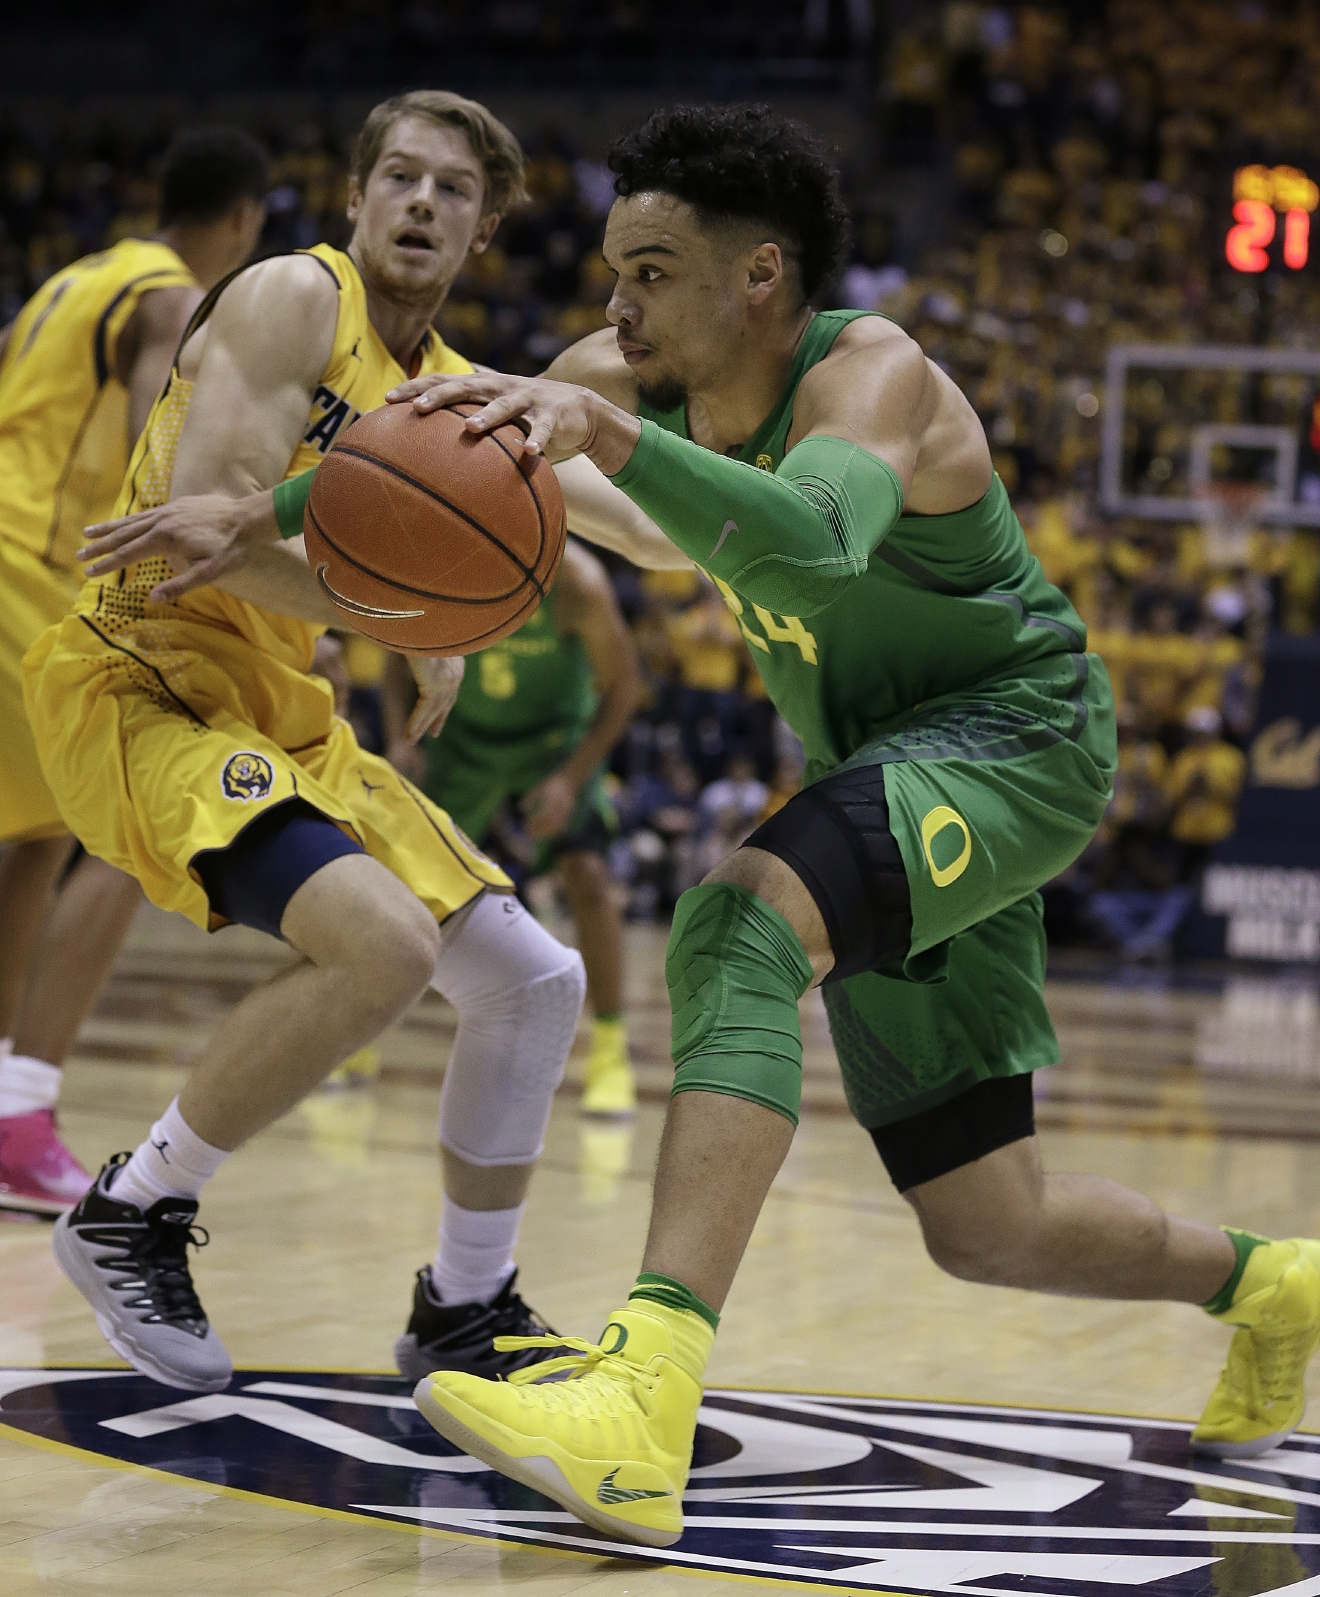 Oregon's Dillon Brooks, right, drives the pall past California's Grant Mullins in the first half of an NCAA college basketball game Wednesday, Feb. 22, 2017, in Berkeley, Calif. (AP Photo/Ben Margot)